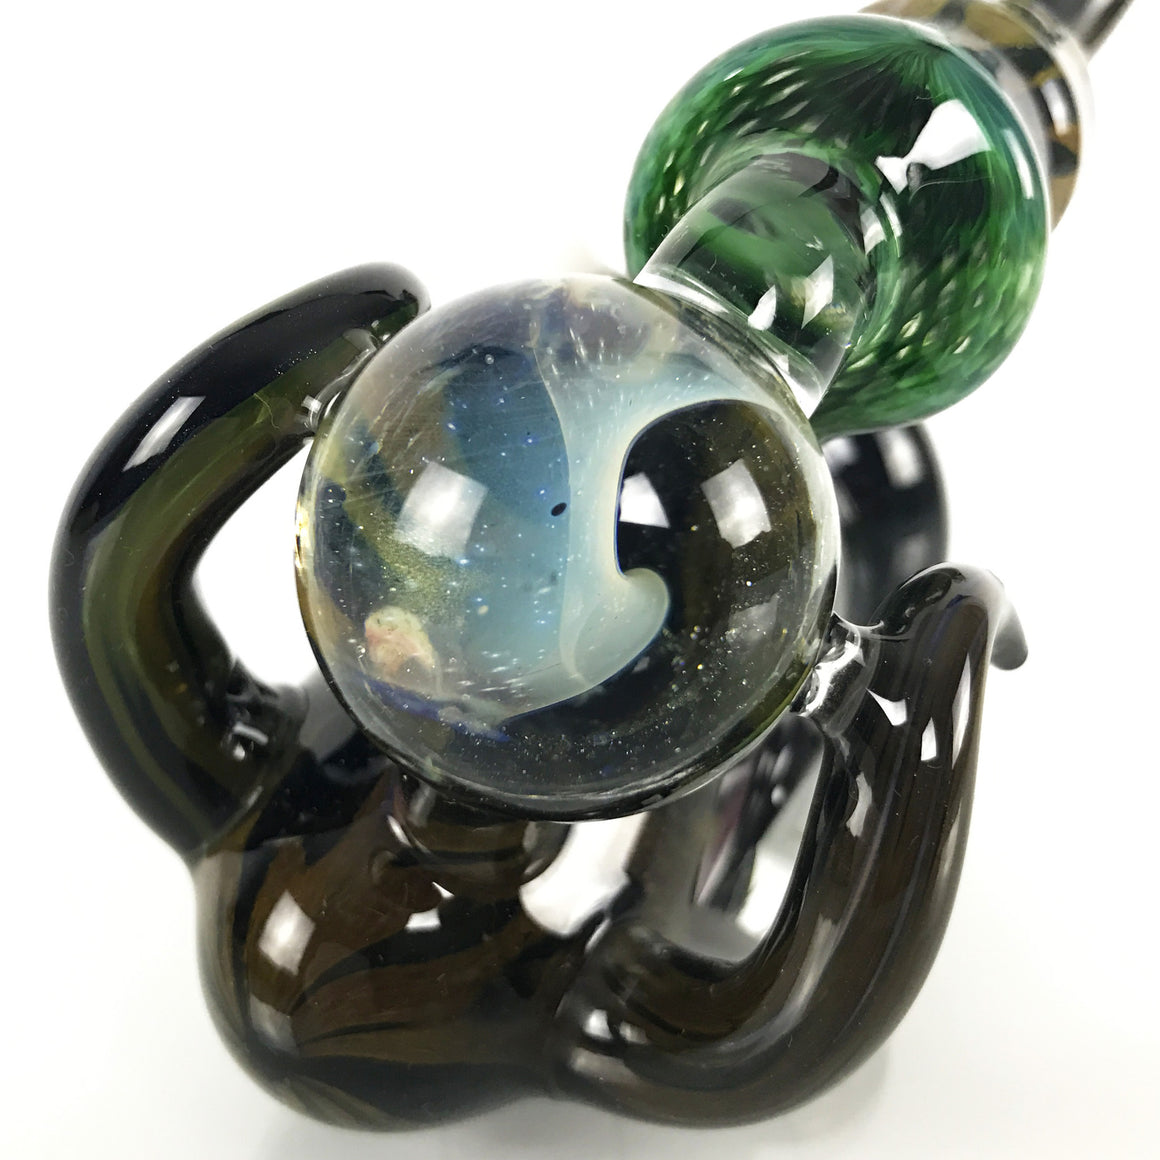 Galaxy Sherlock with Experimental Green Retticello